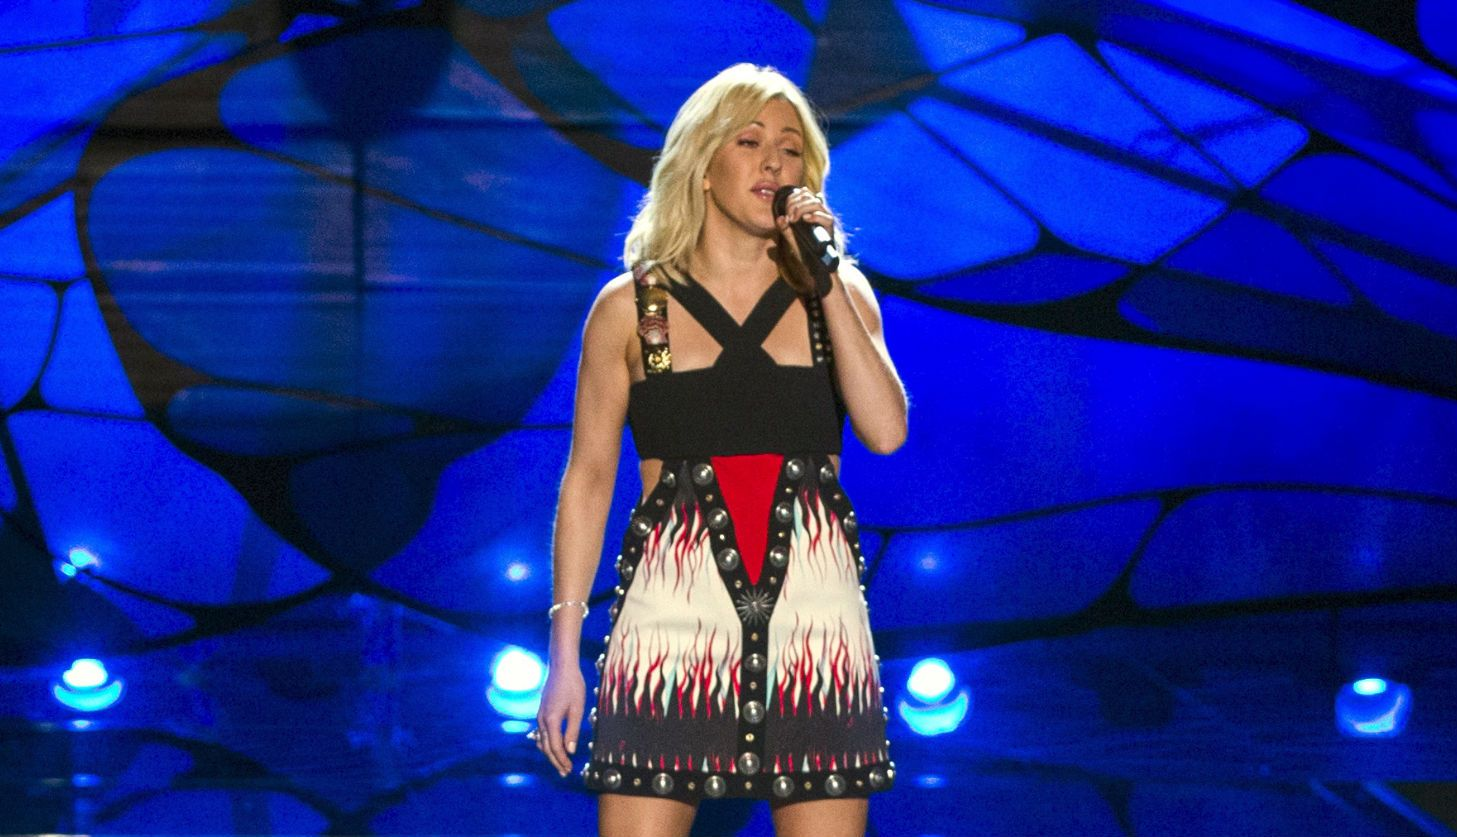 Ellie Goulding performs